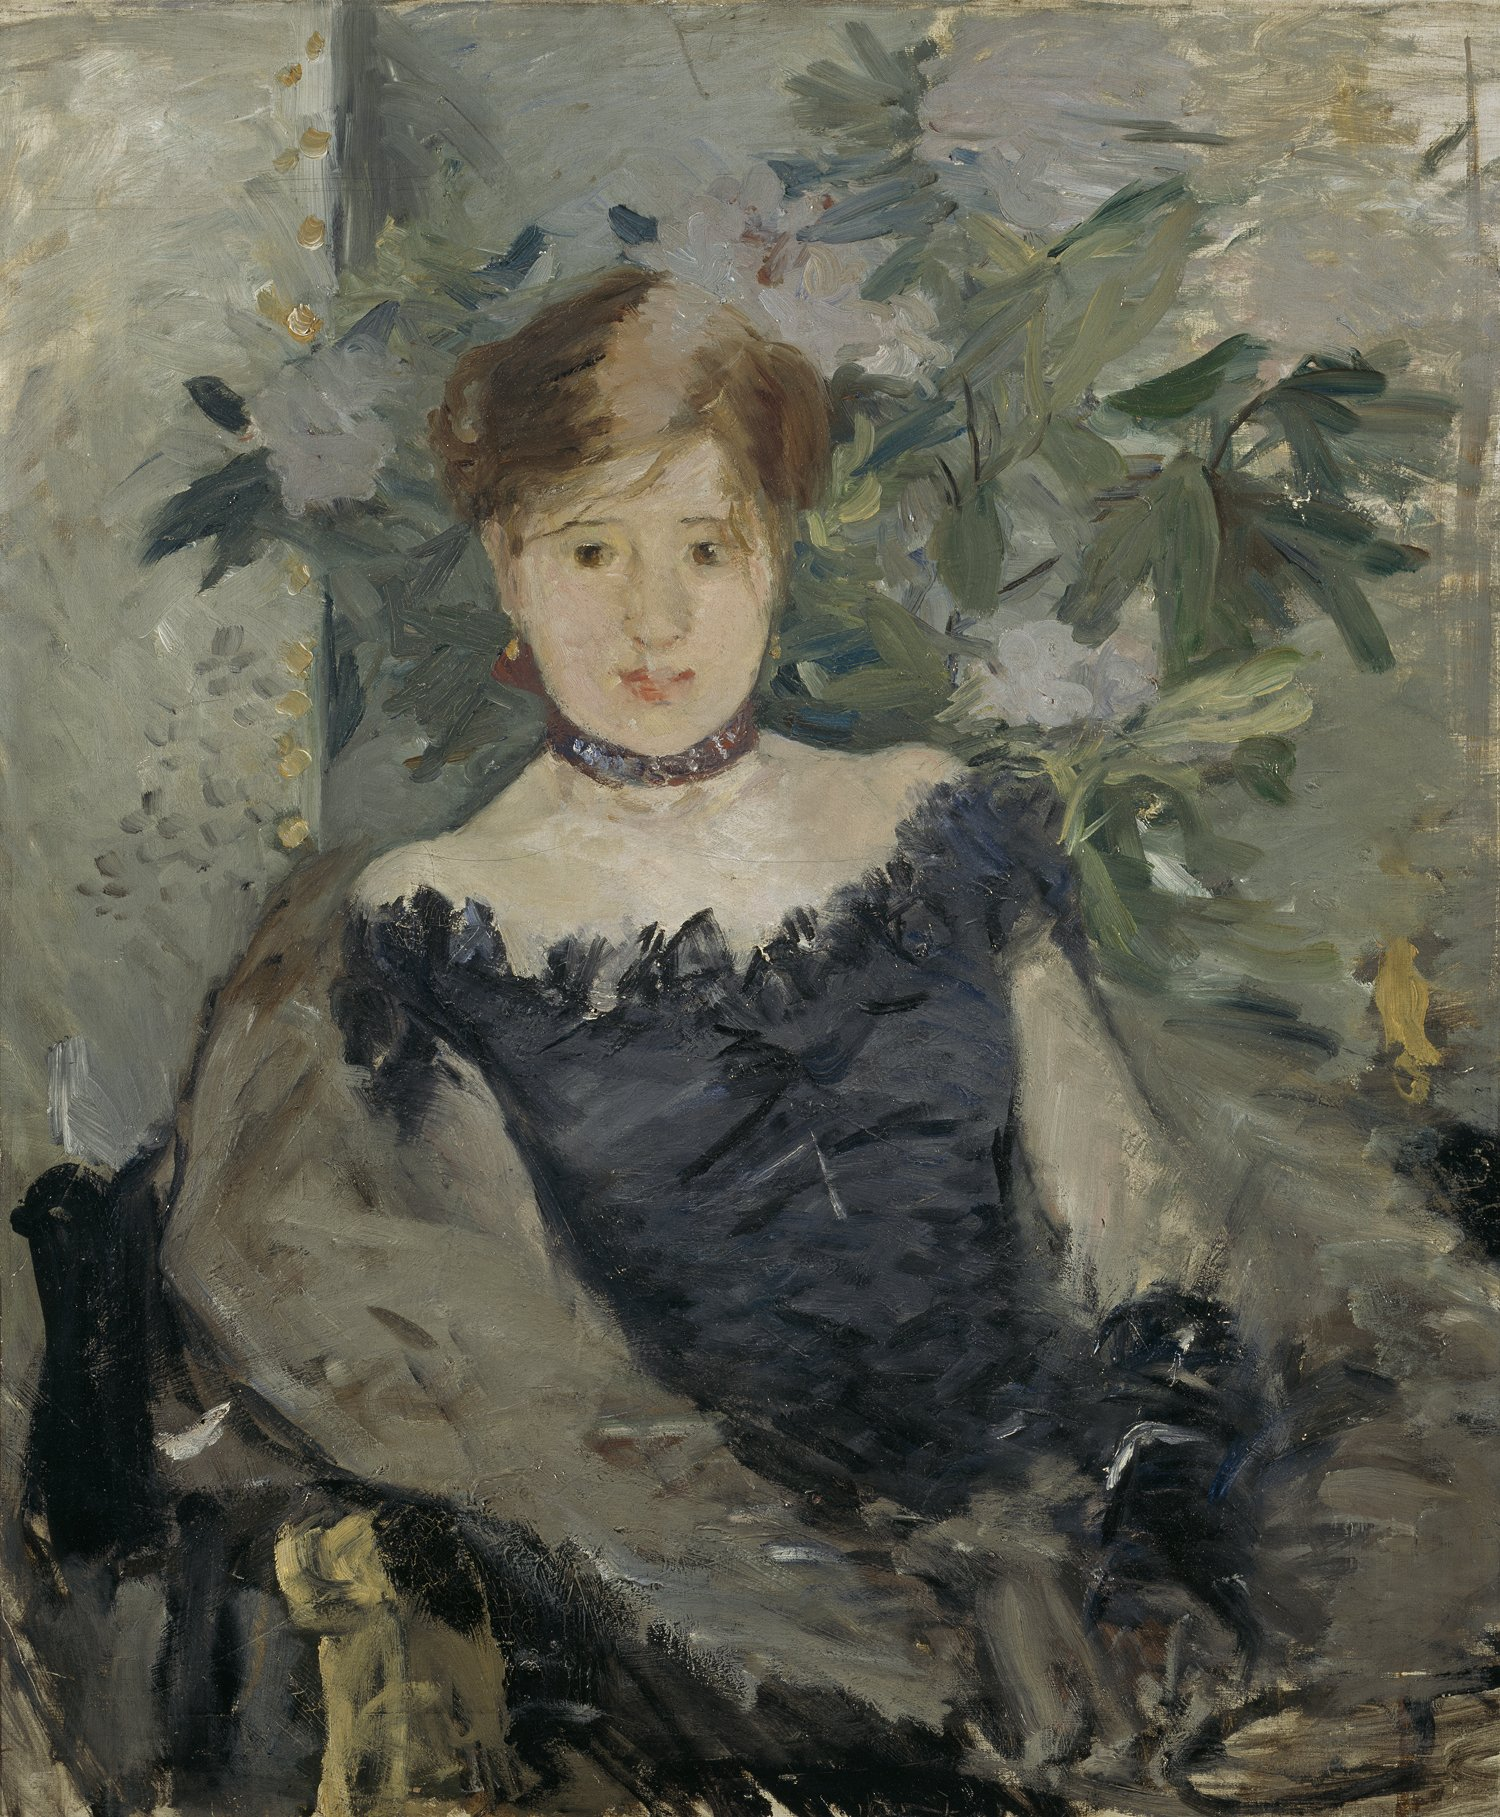 """National Gallery of Ireland on Twitter: """"Berthe Morisot's 1878 painting 'Le Corsage  Noir', now hanging in the Millennium Wing #InternationalWomensDay  https://t.co/fGn1QZm37J"""""""